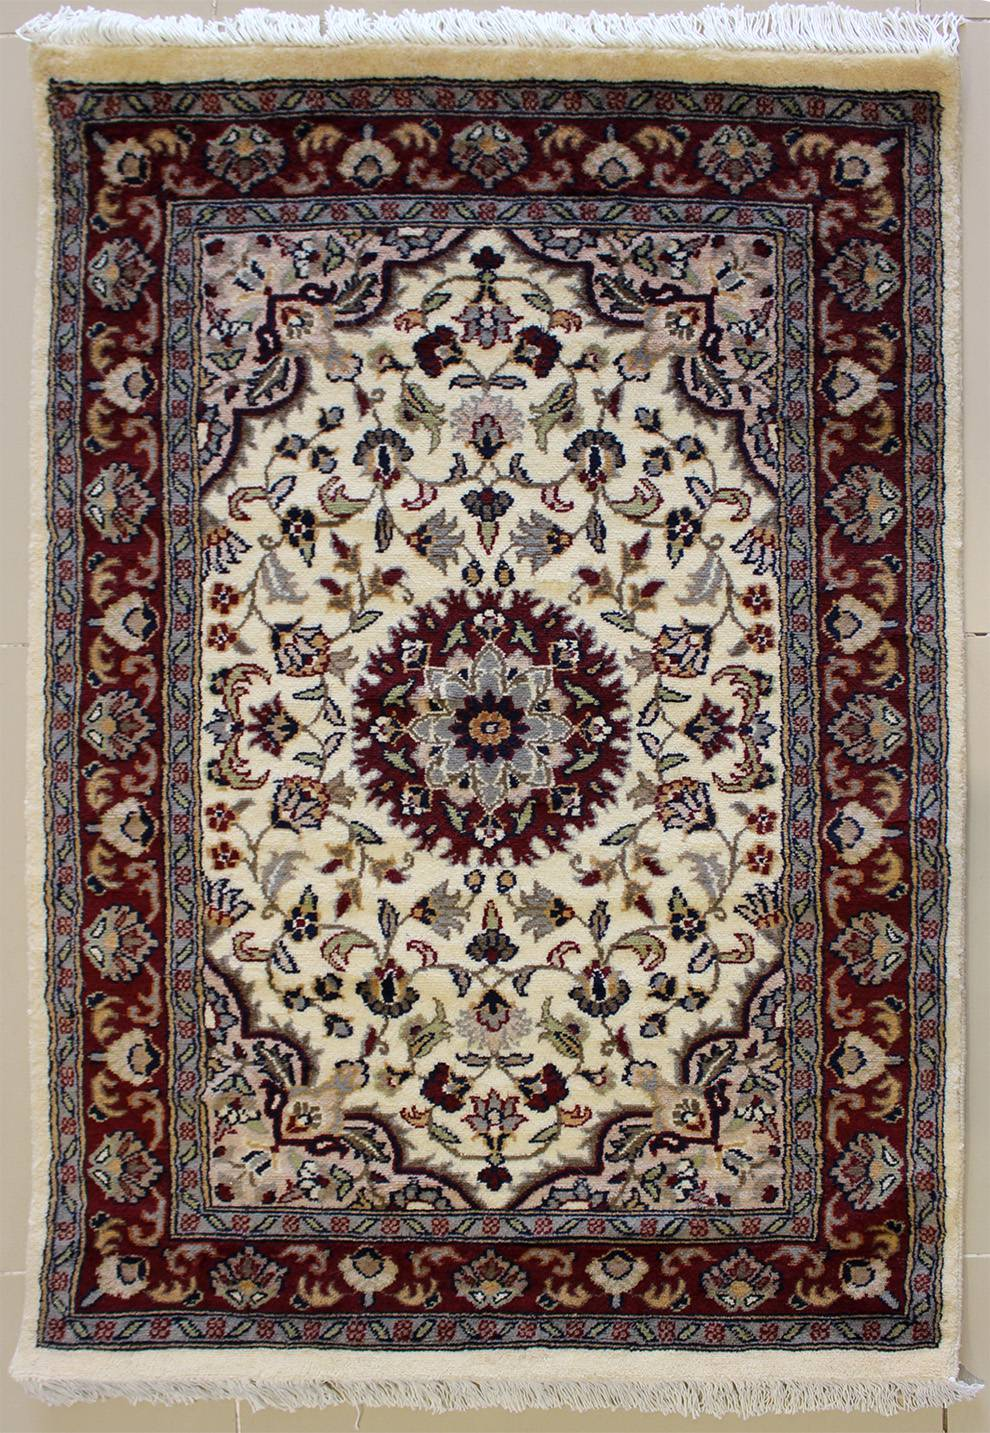 2 39 6x4 39 2 rug floral handmade pak persian high quality